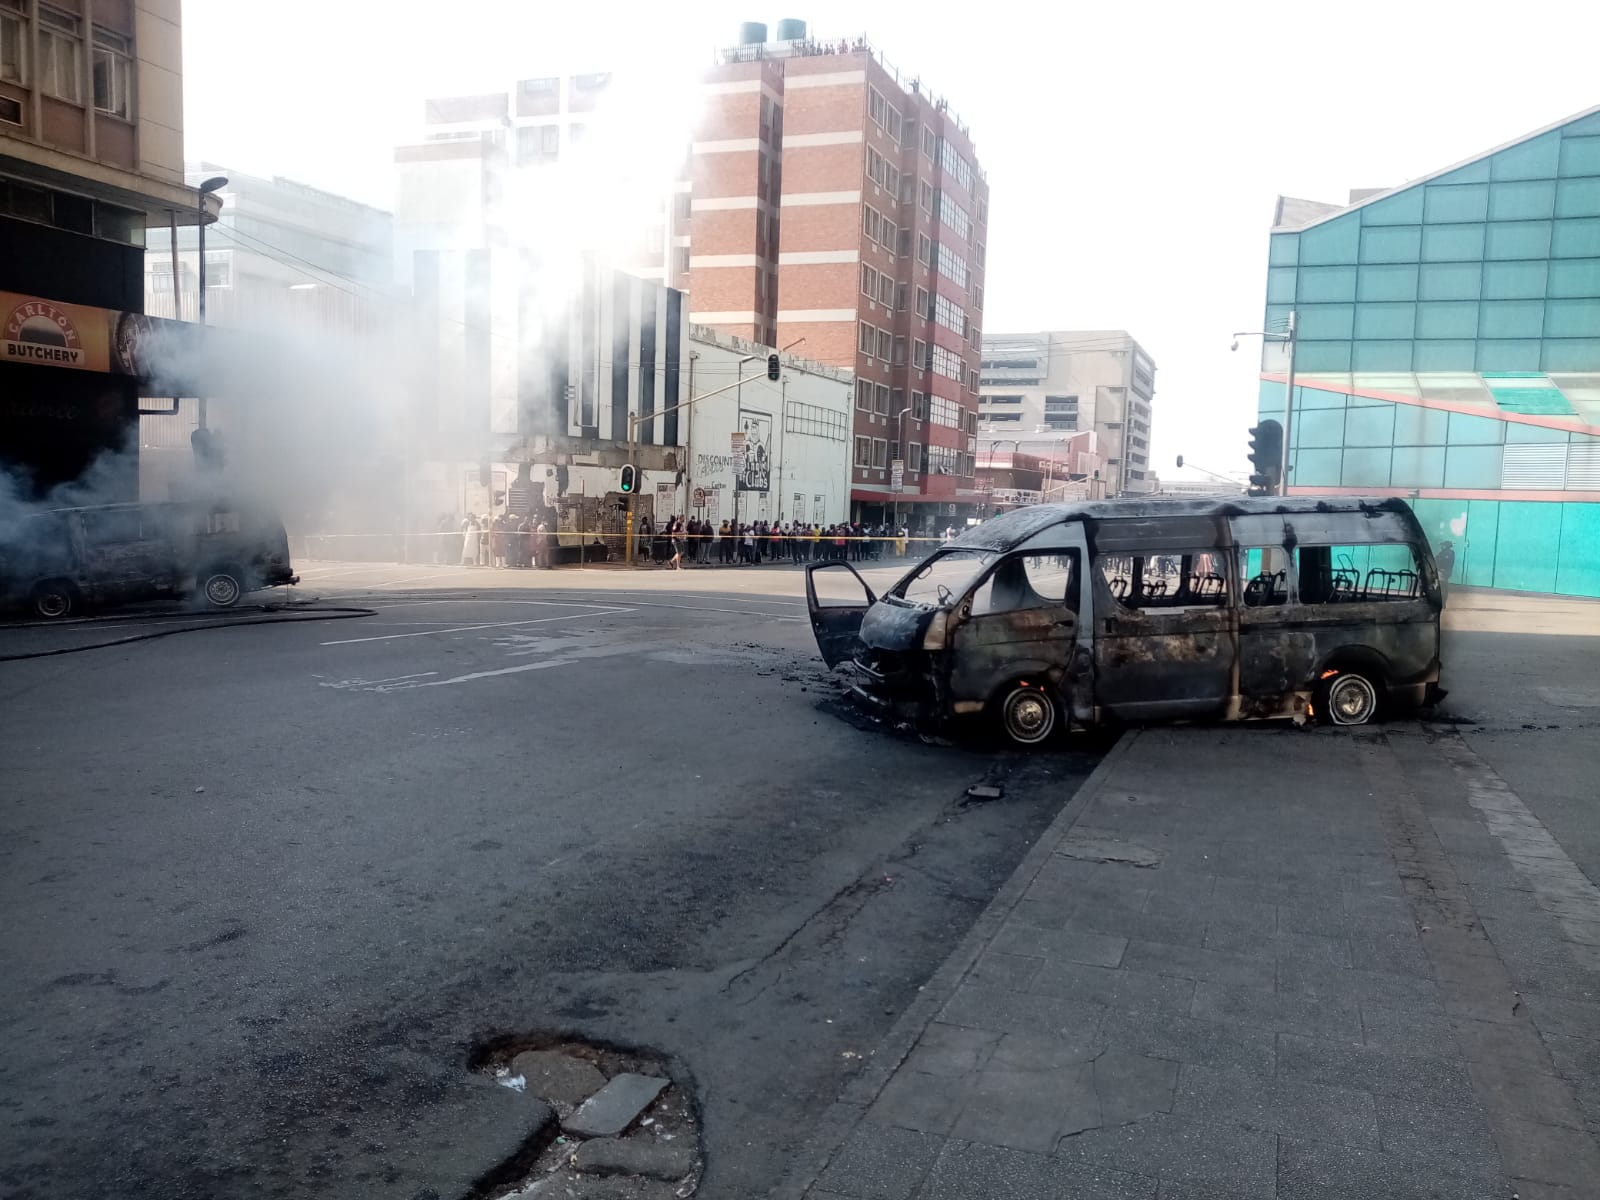 WATCH | At least 4 taxis torched as violence erupts between rival taxi associations in Joburg